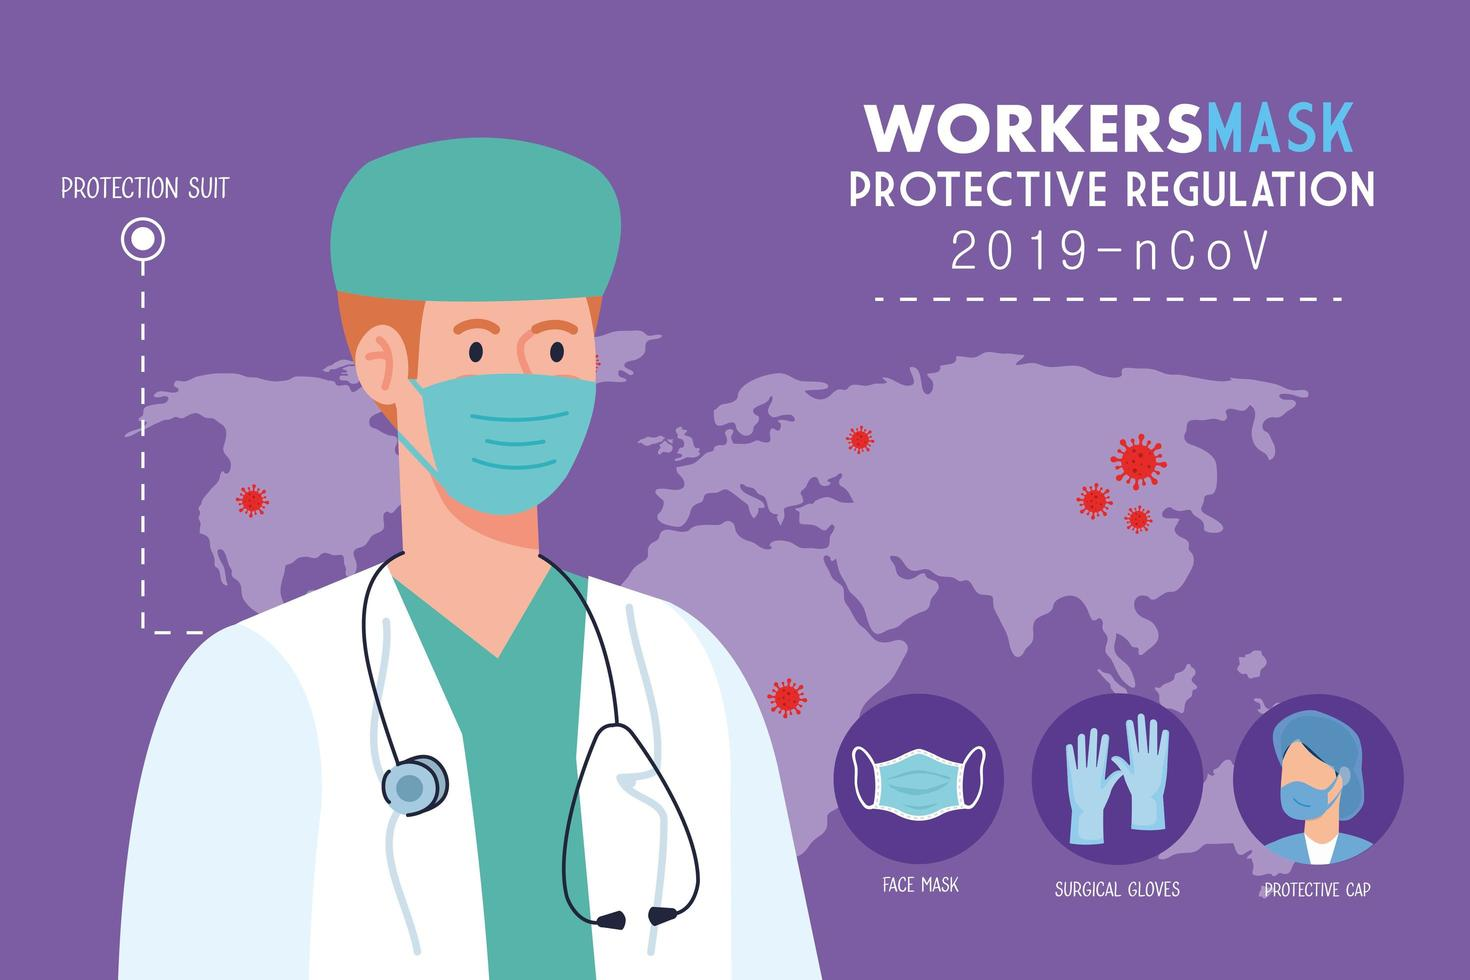 doctor wearing medical mask against 2019 ncov,with protective regulation prevention coronavirus, pandemic concept vector